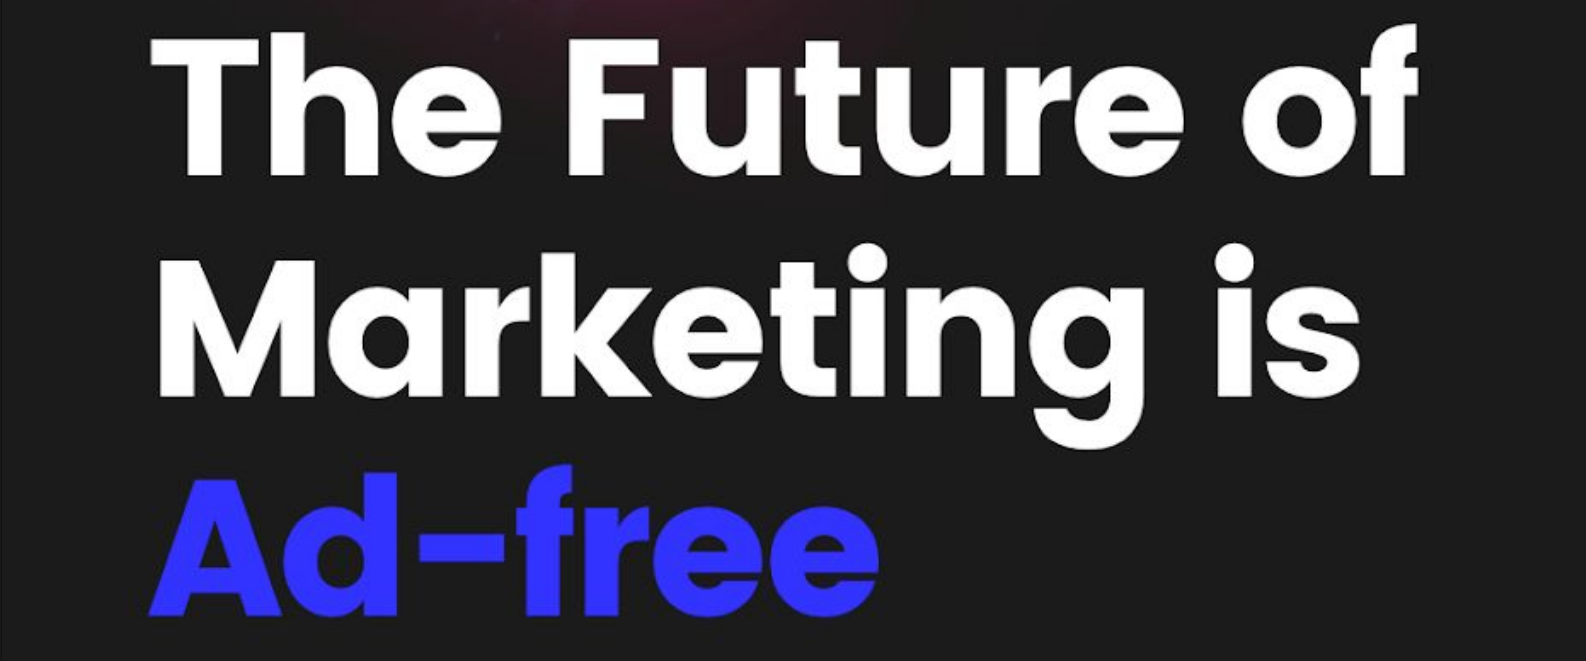 WOM Token: The Future of Marketing is Ad-free